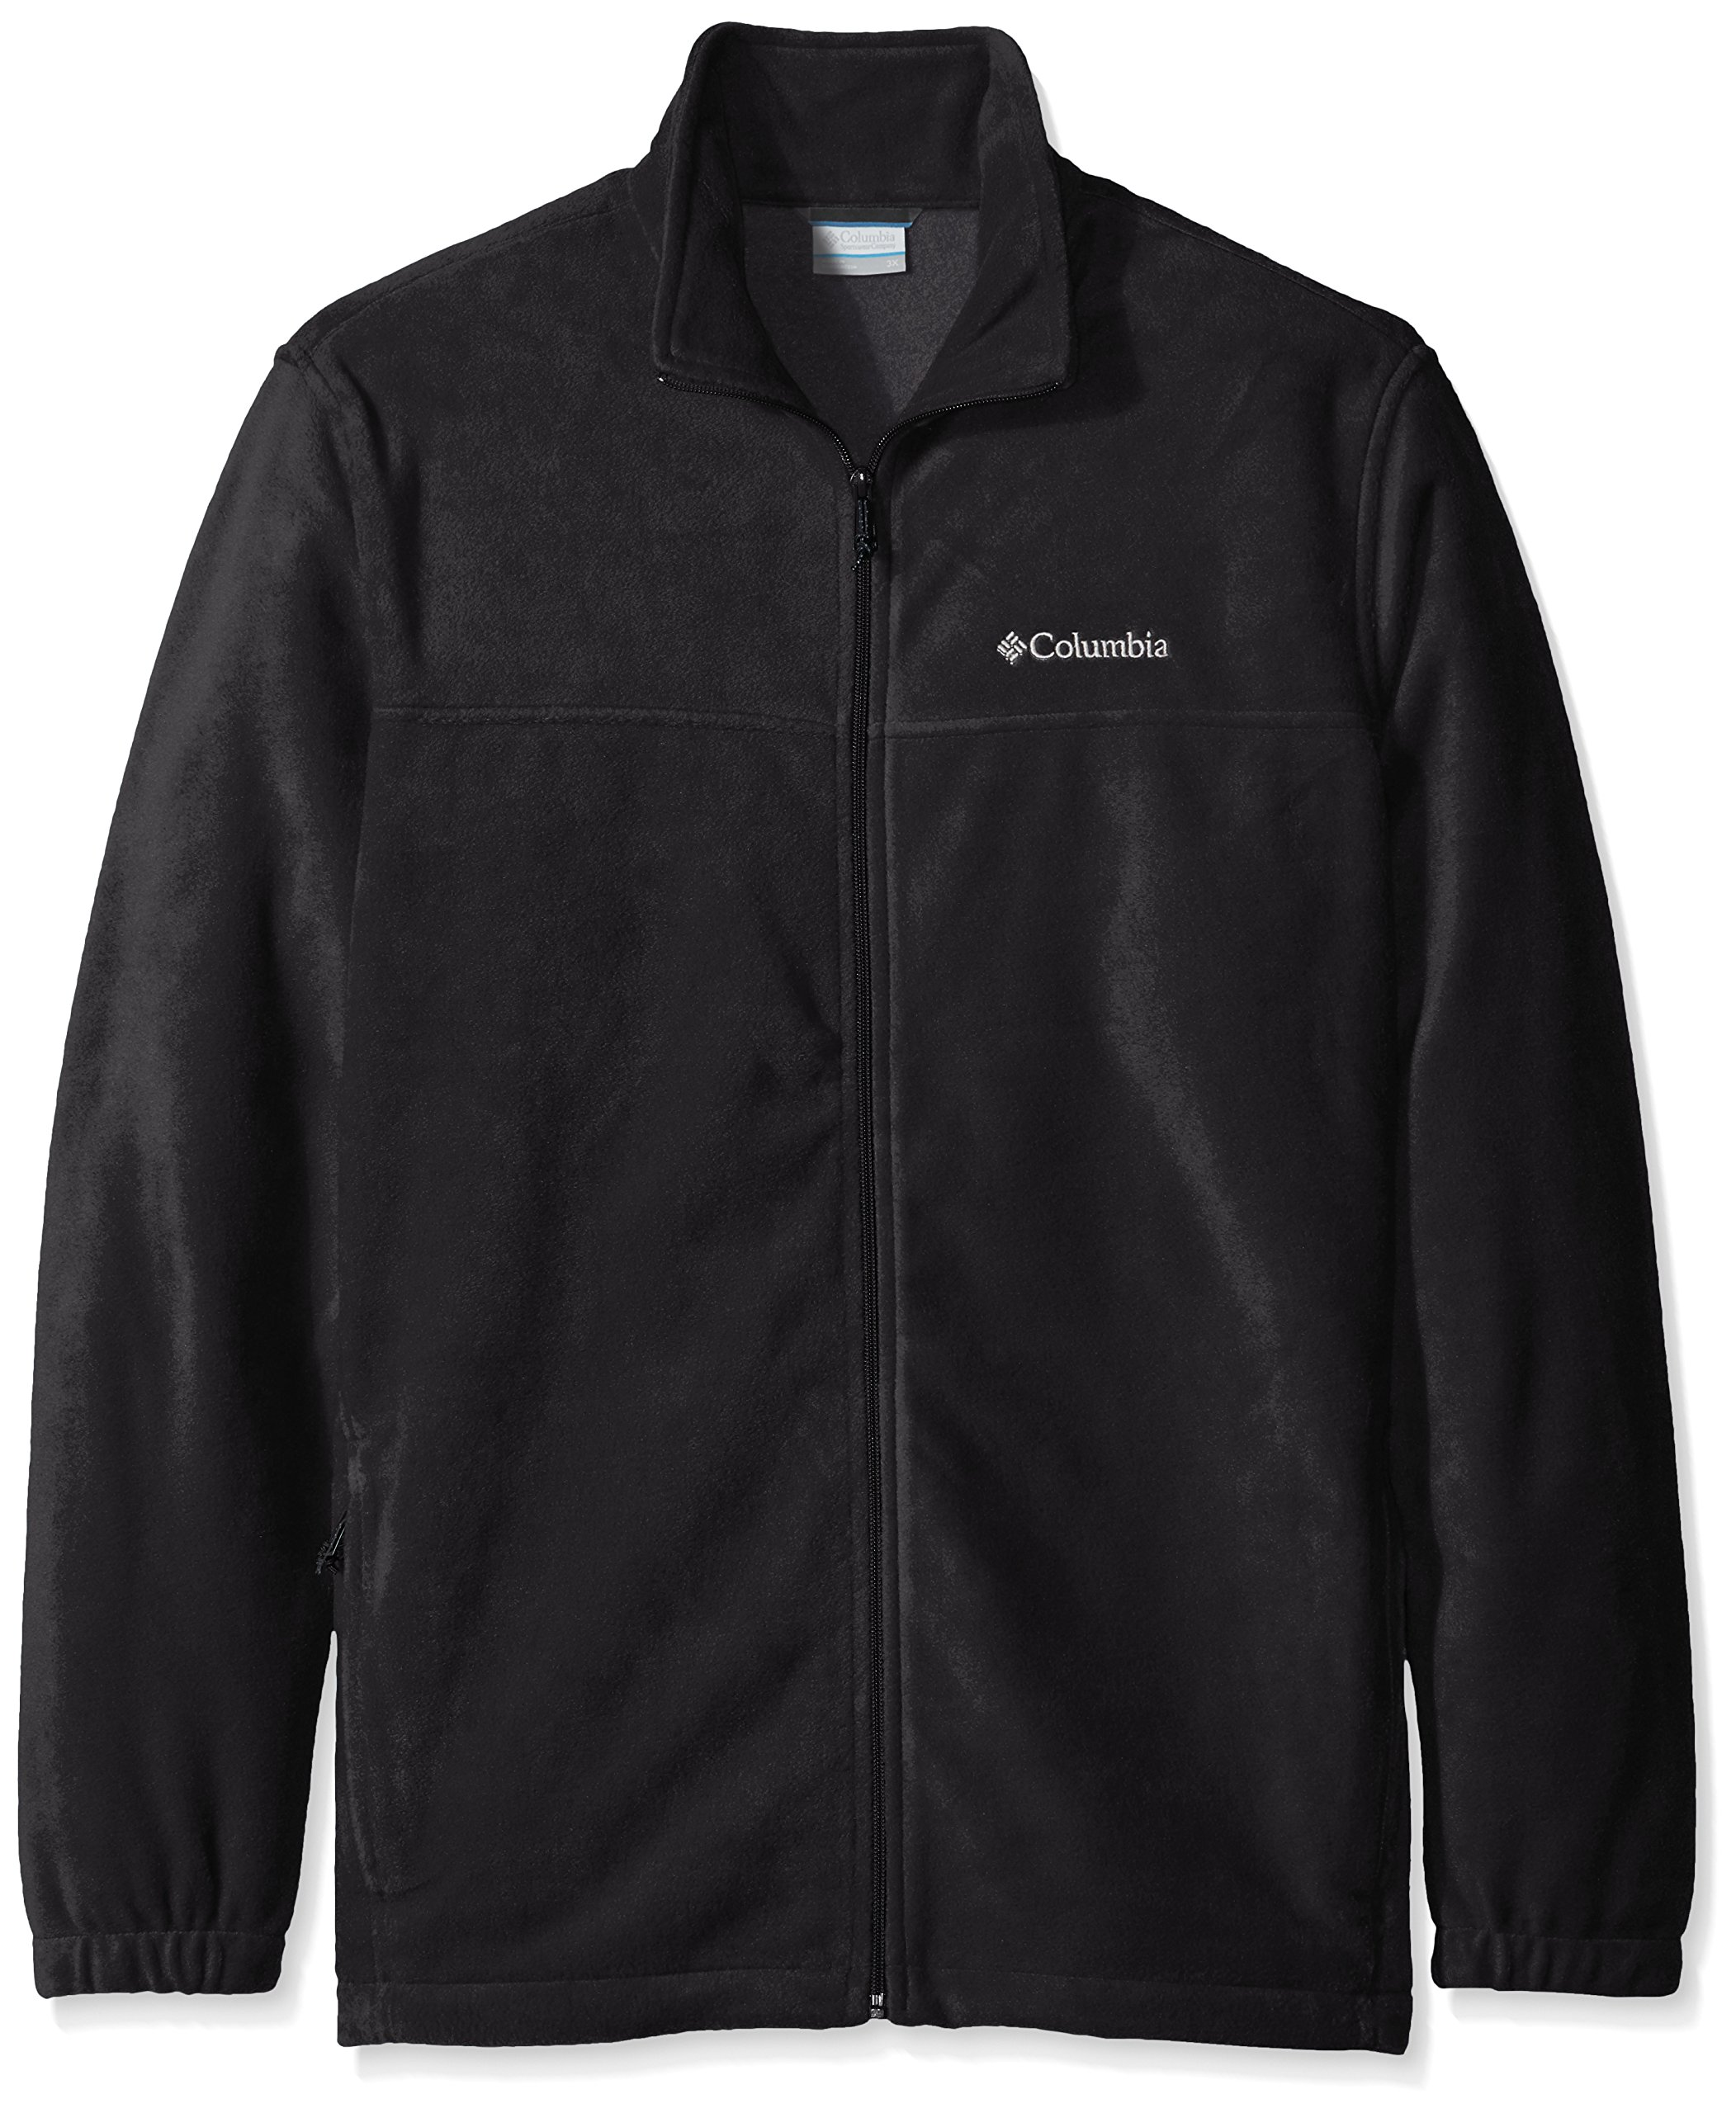 Columbia Men's Big Steens Mountain Full Zip 2.0 Fleece Jacket, Black, 3X by Columbia